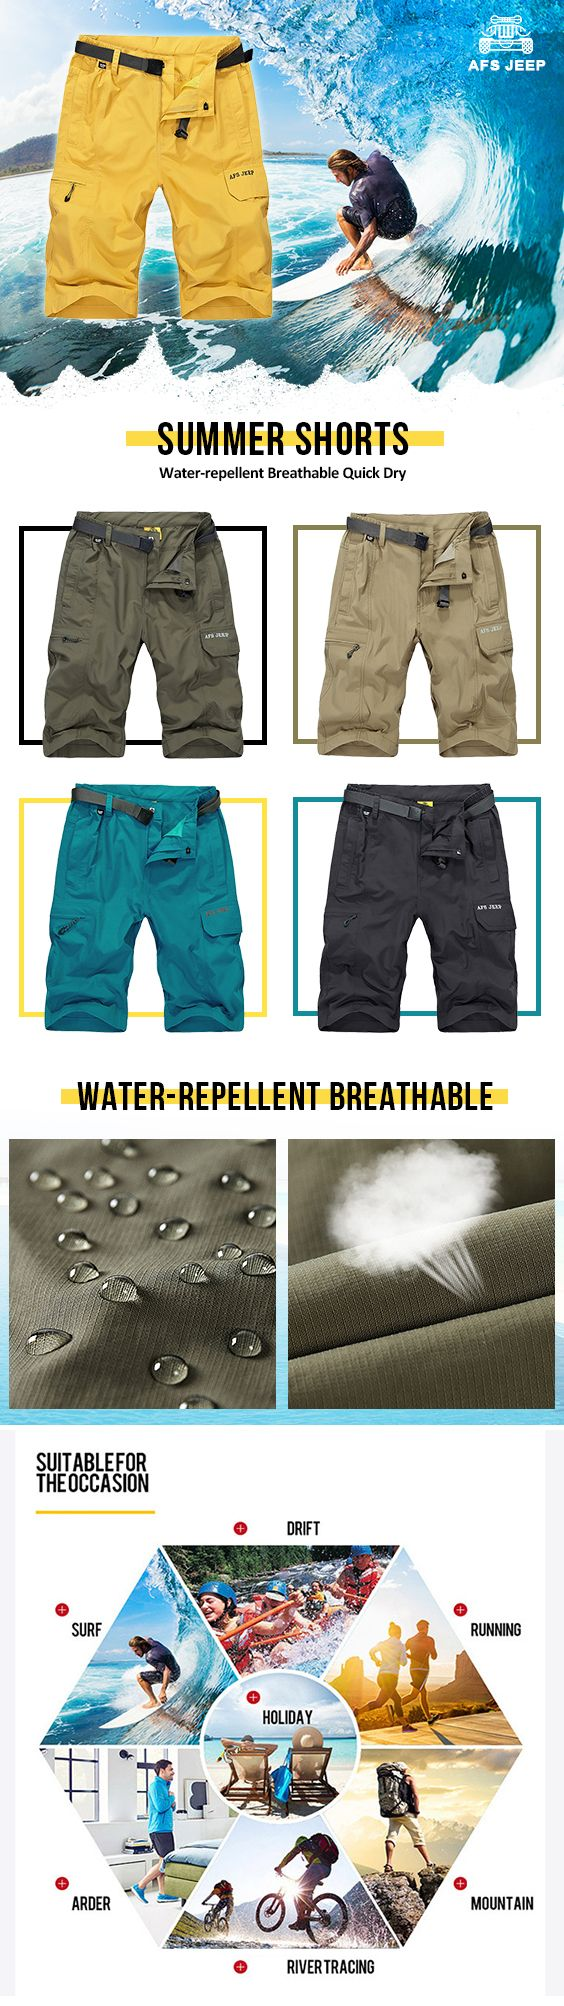 Home clothing mens clothing dragon furnace longsleeve t - Afsjeep Mens Summer Water Repellent Breathable Quick Dry Zippered Pocket Shorts